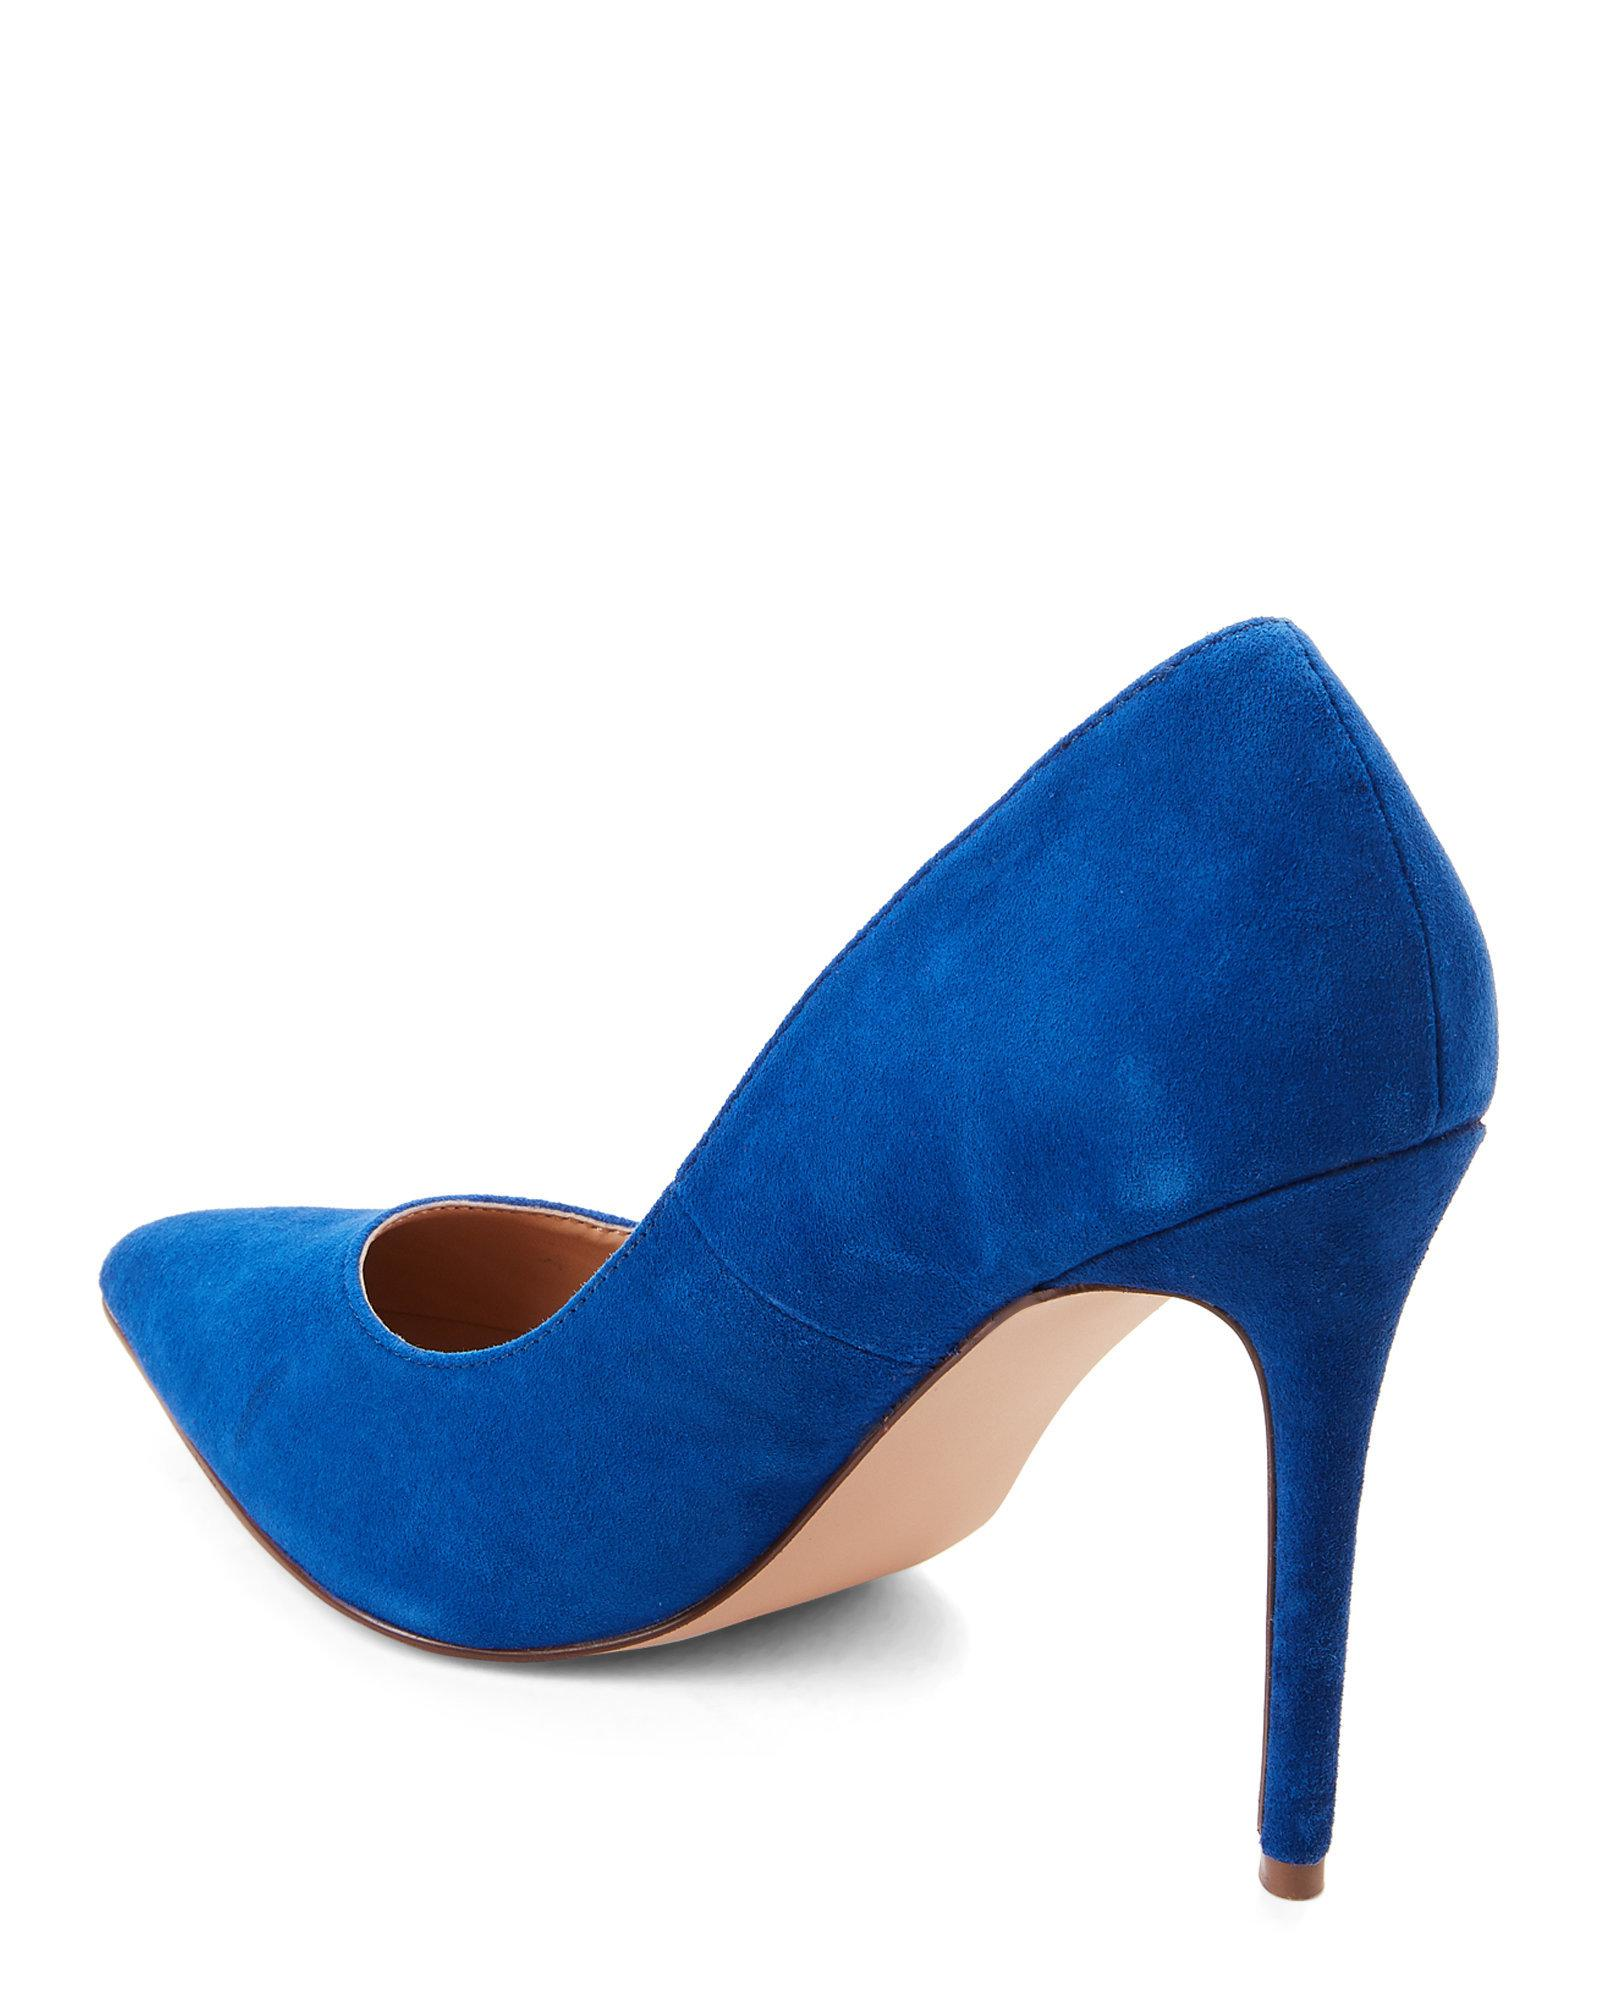 3b9e605cf27 Steve Madden Poet Blue Suede Pointed Toe Pumps